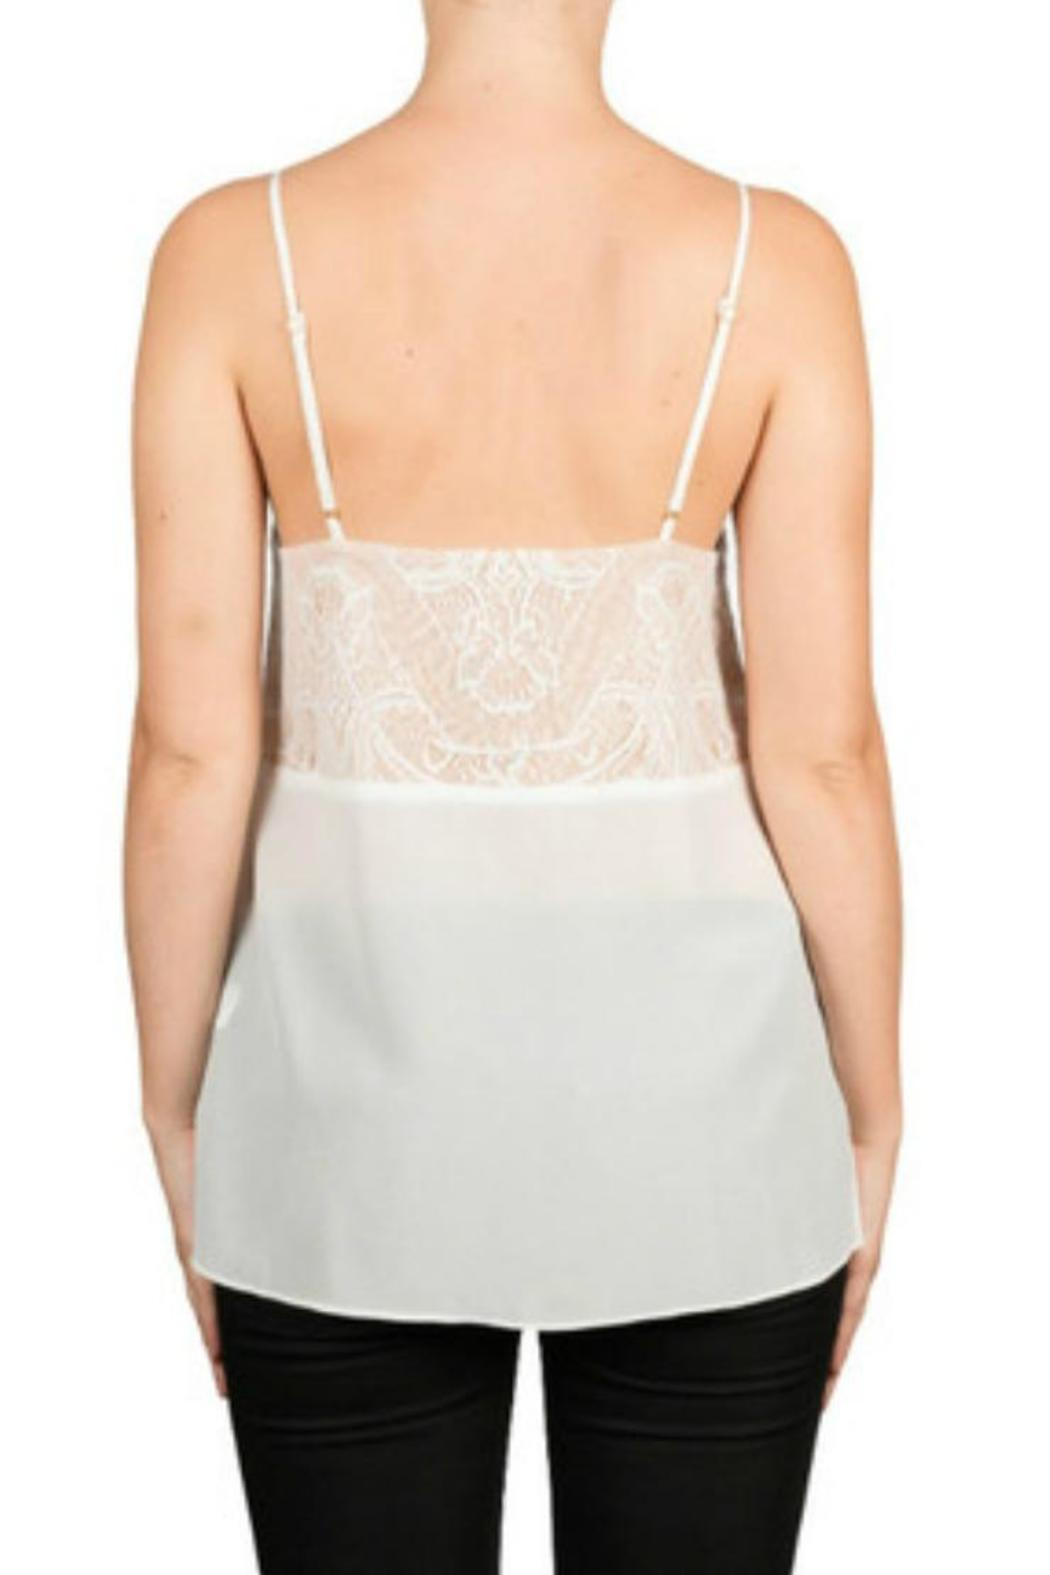 Cami Nyc Zoe White Lace From Philadelphia By Ellelauri